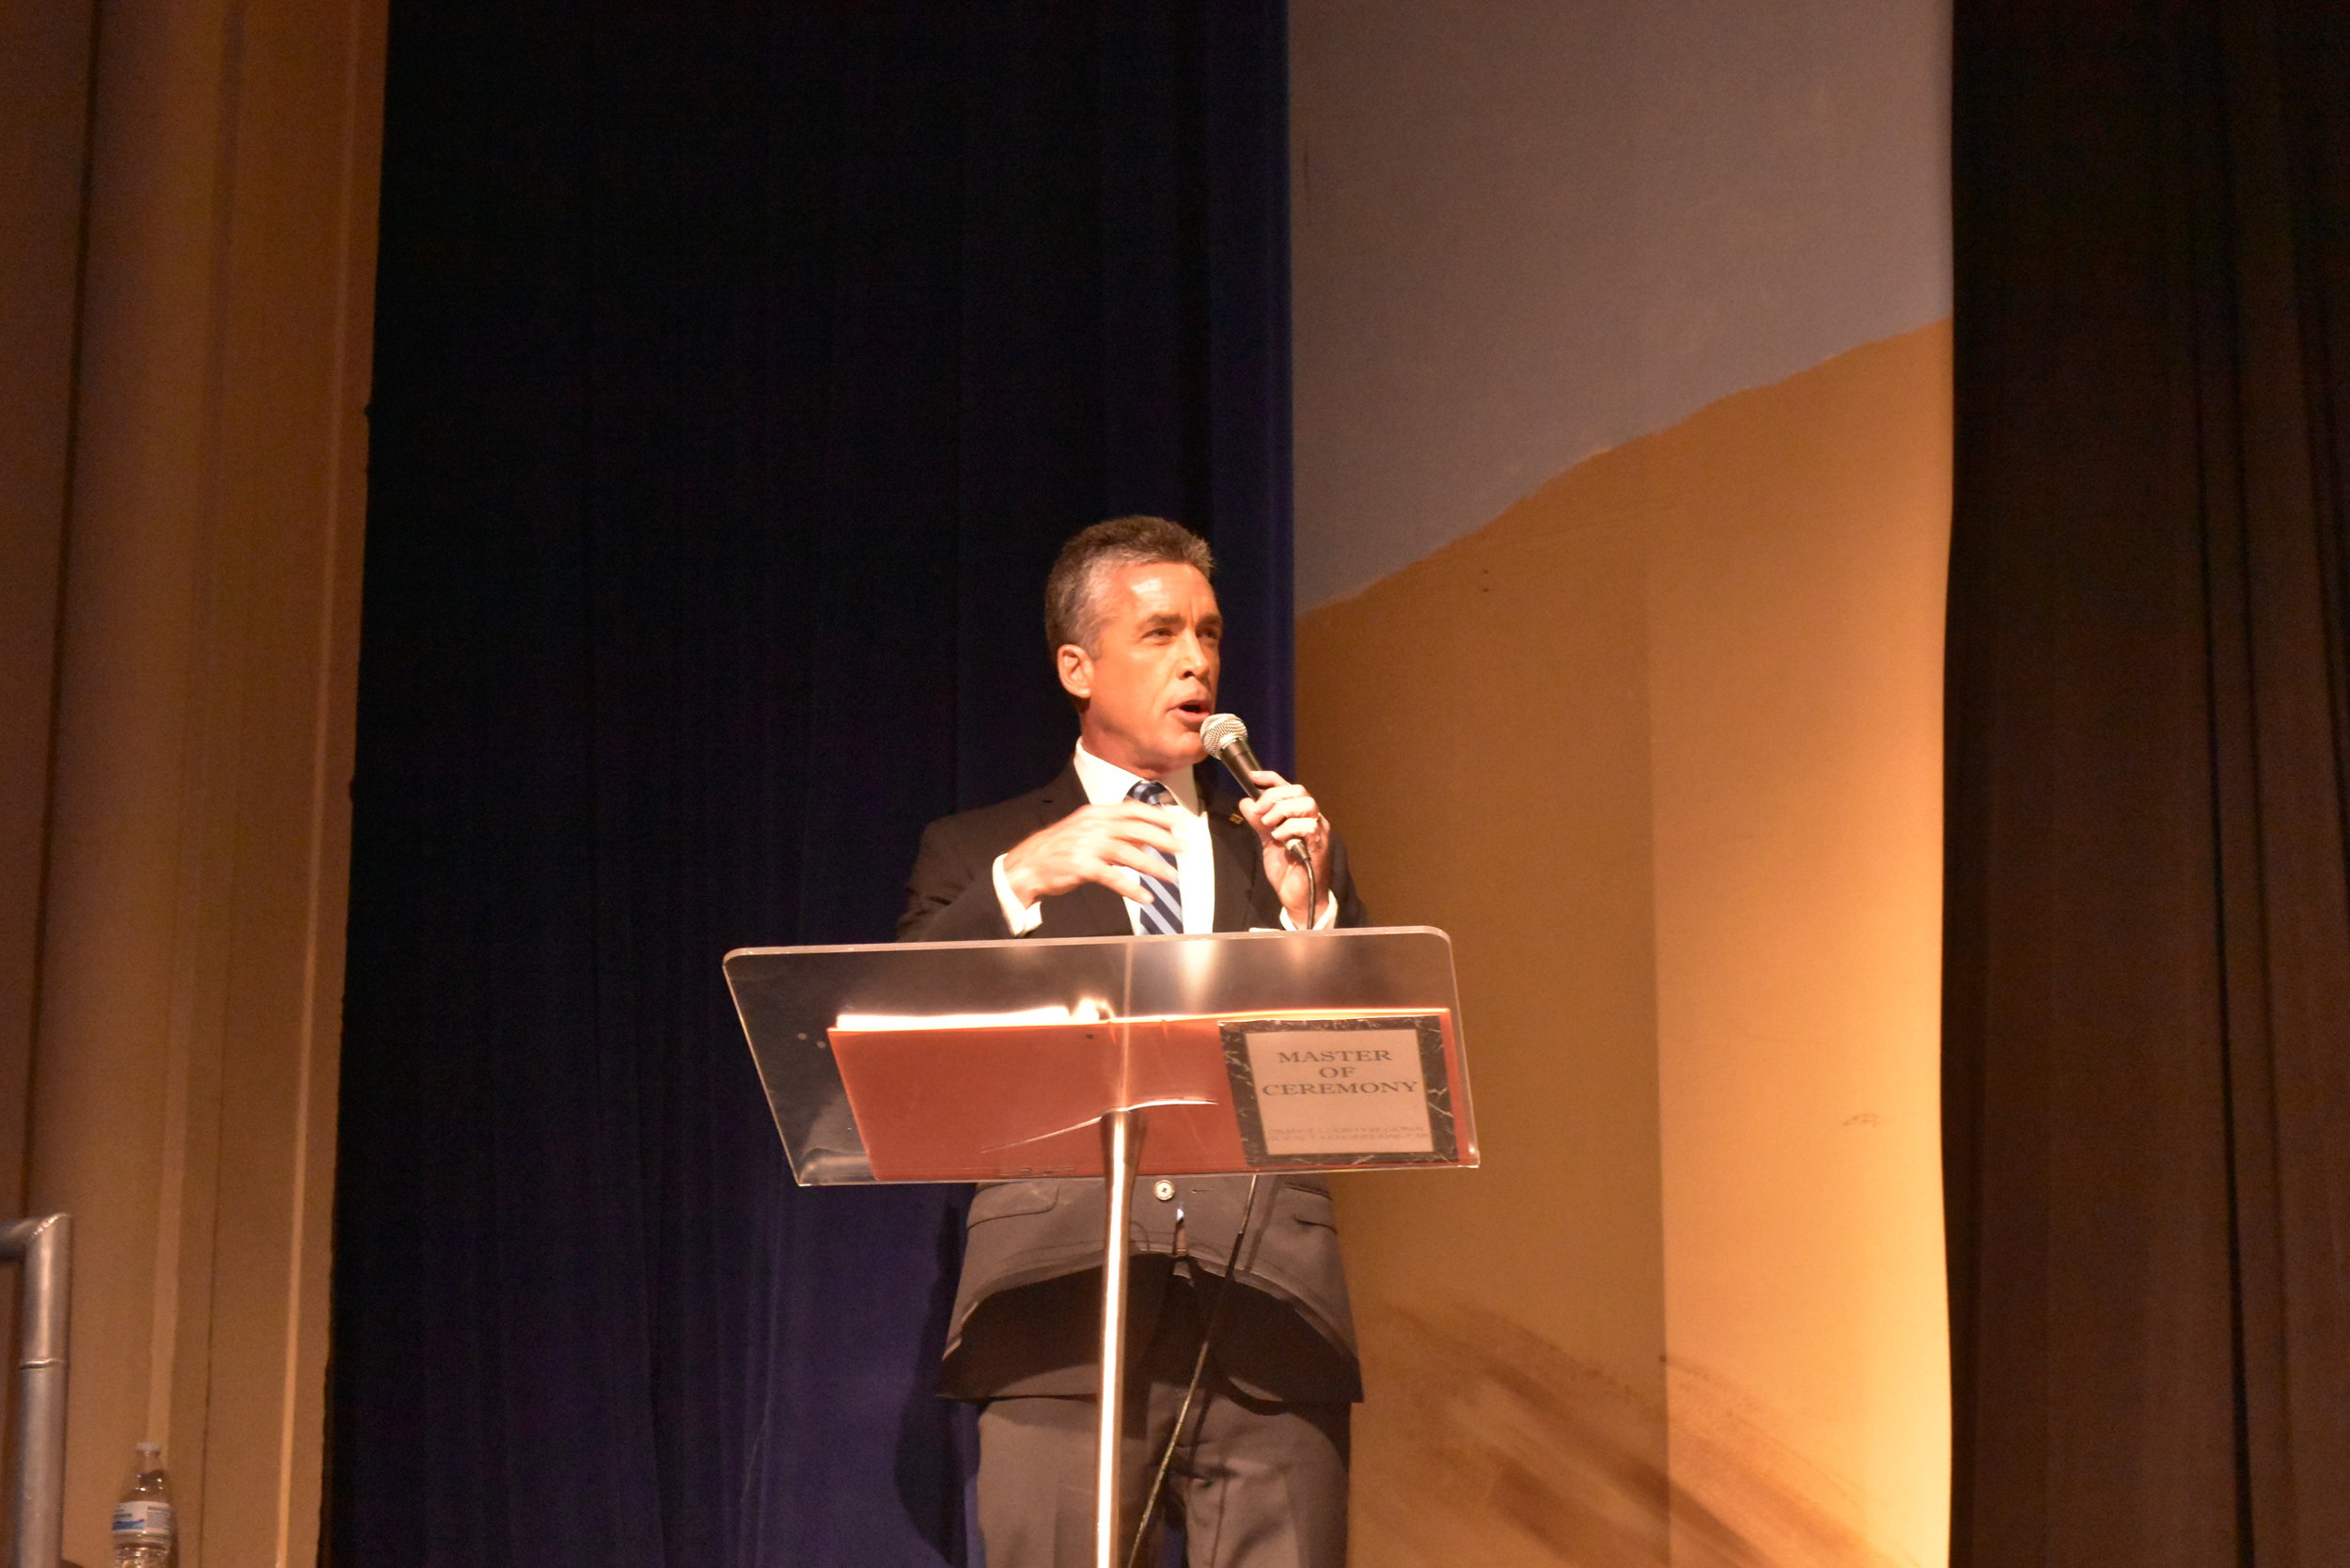 WESH TV's Jim Payne has been the Master of Ceremonies at the Ying Expo Awards for the past 15 years.